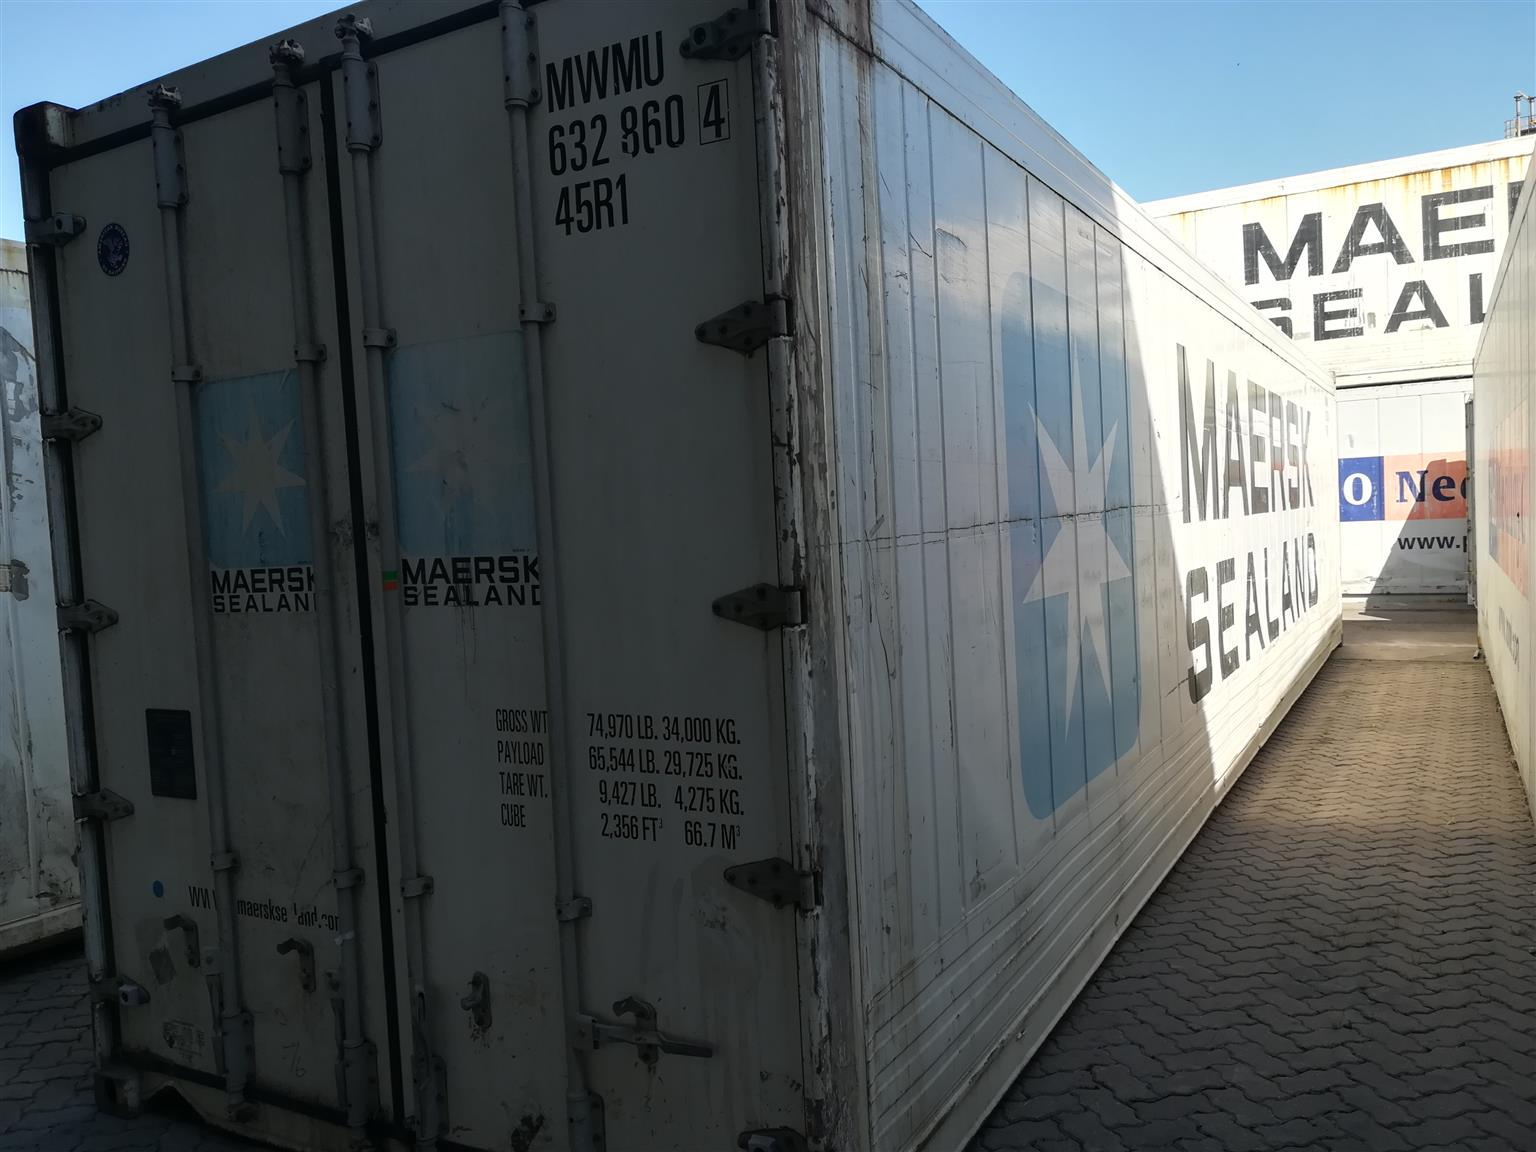 12m non-running reefer containers for sale